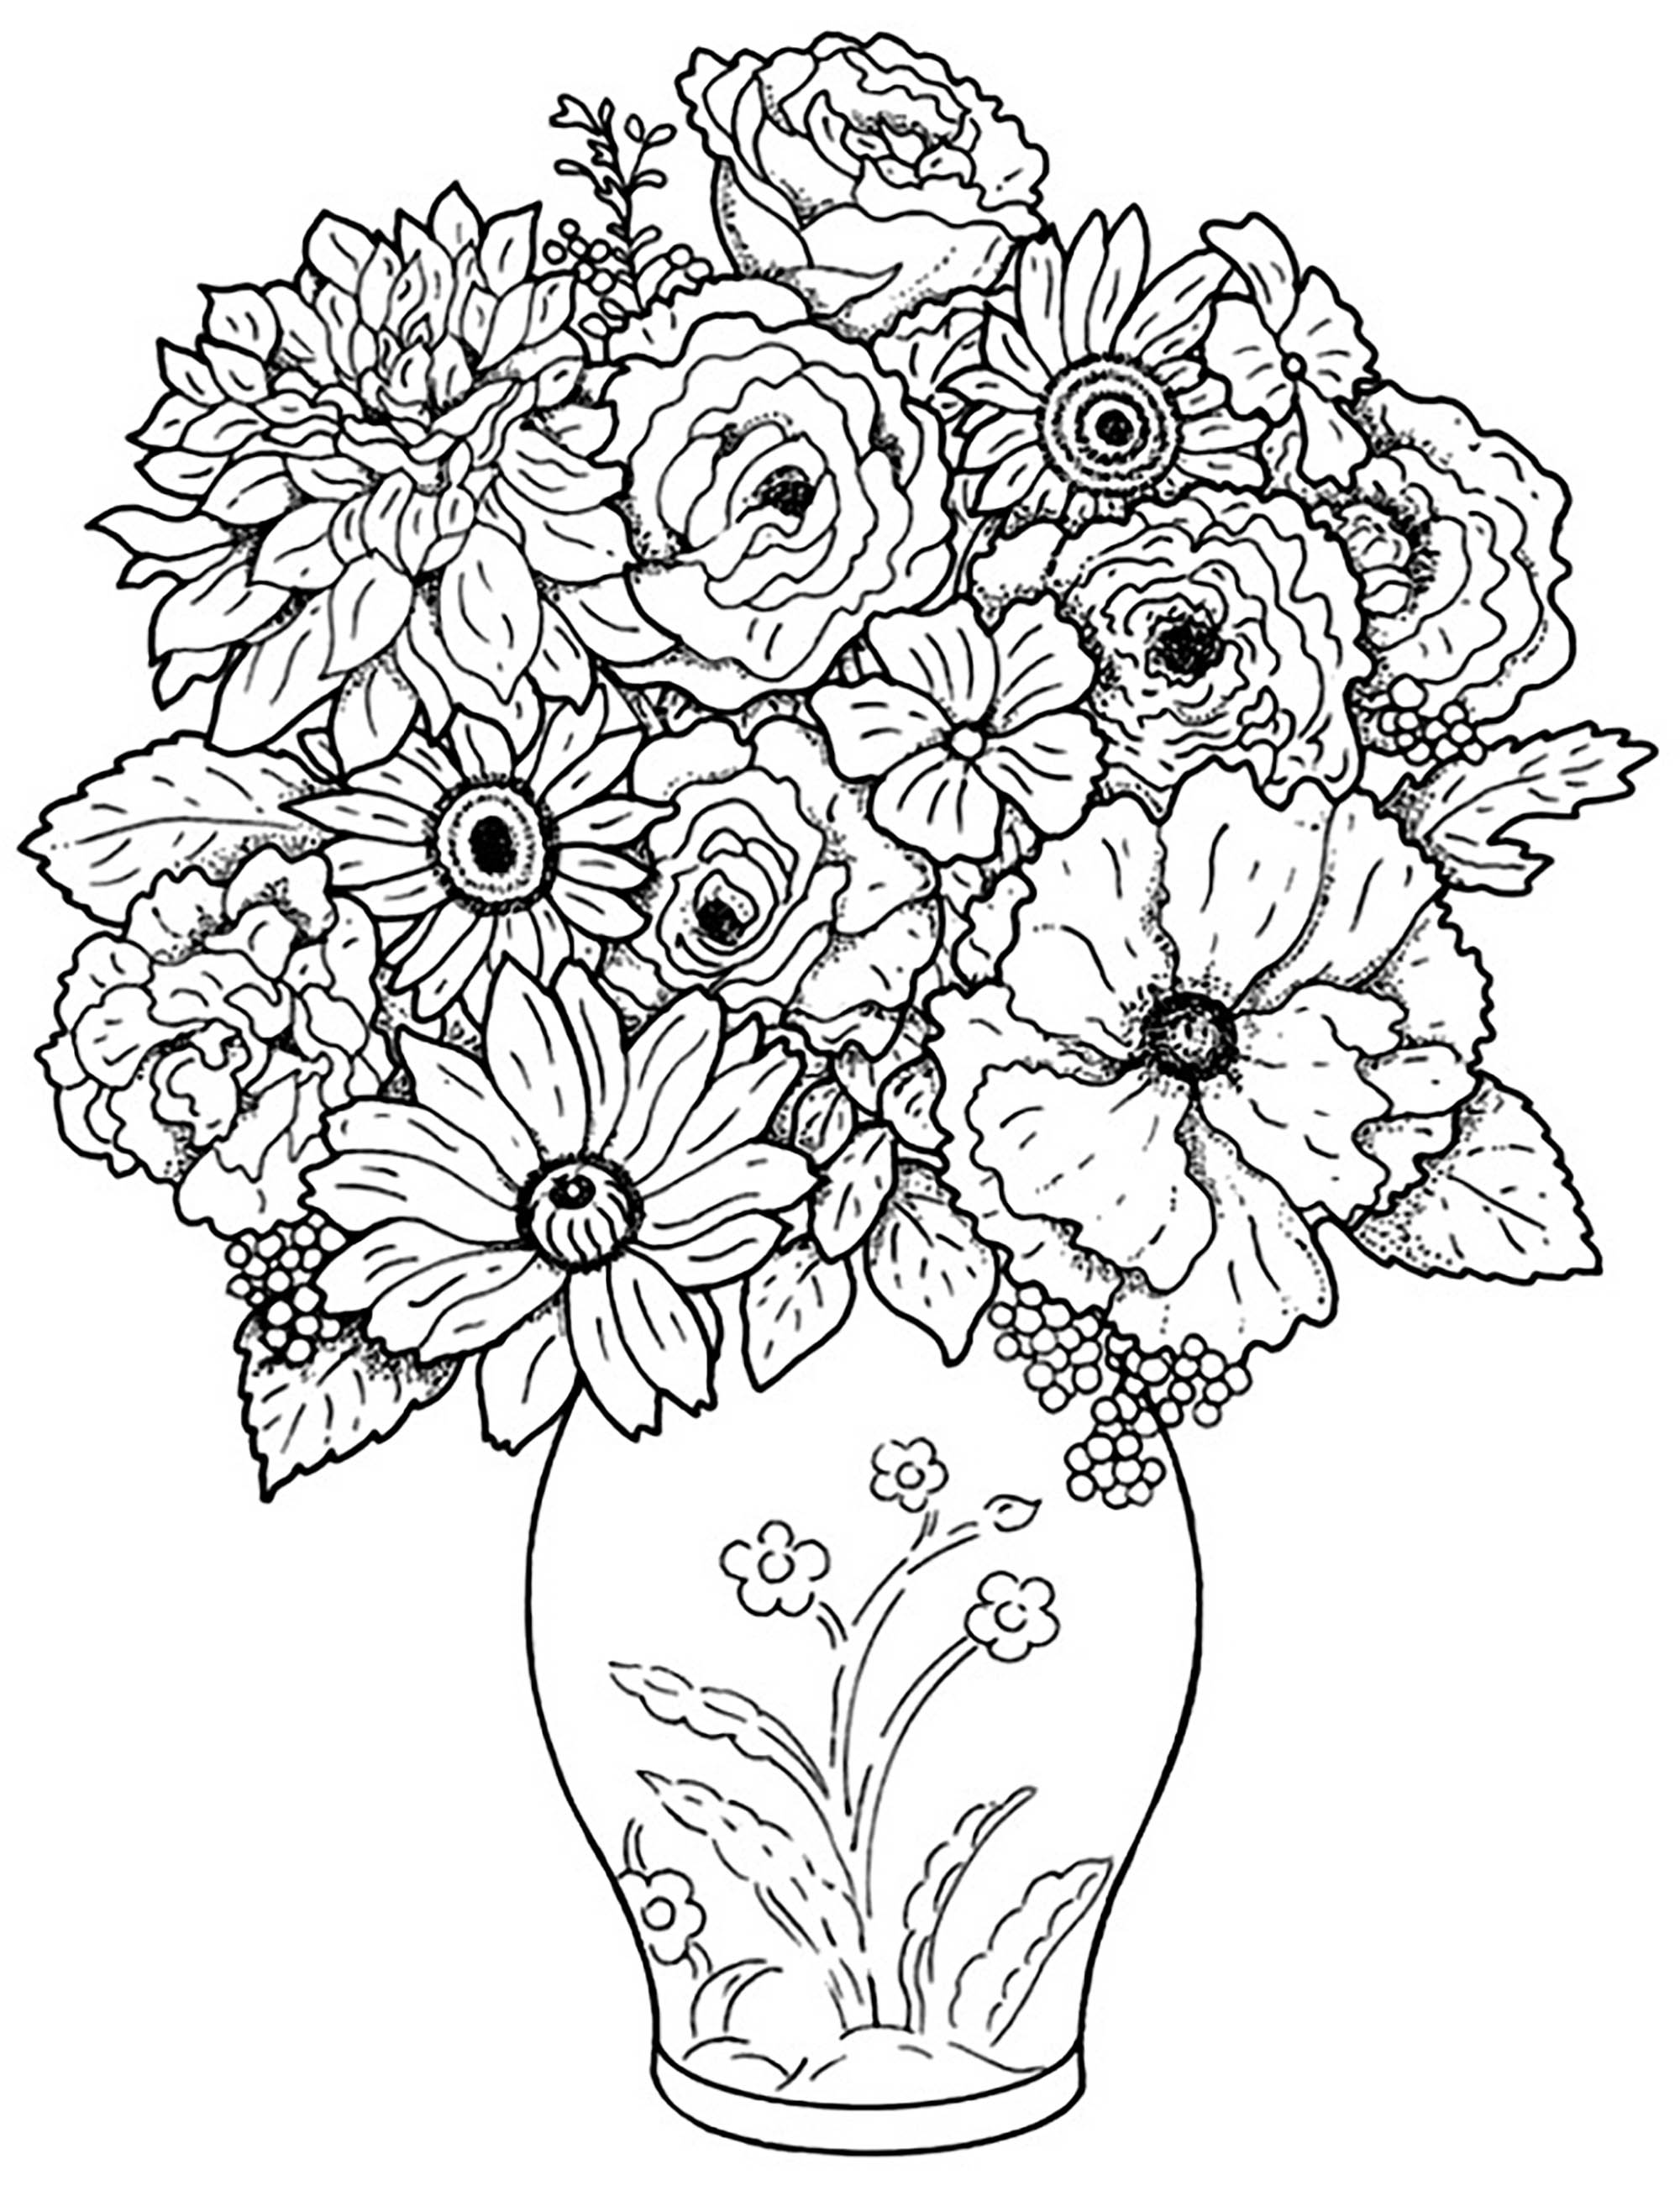 coloring pics of flowers free printable flowers pdf coloring pages 13 of coloring pics flowers